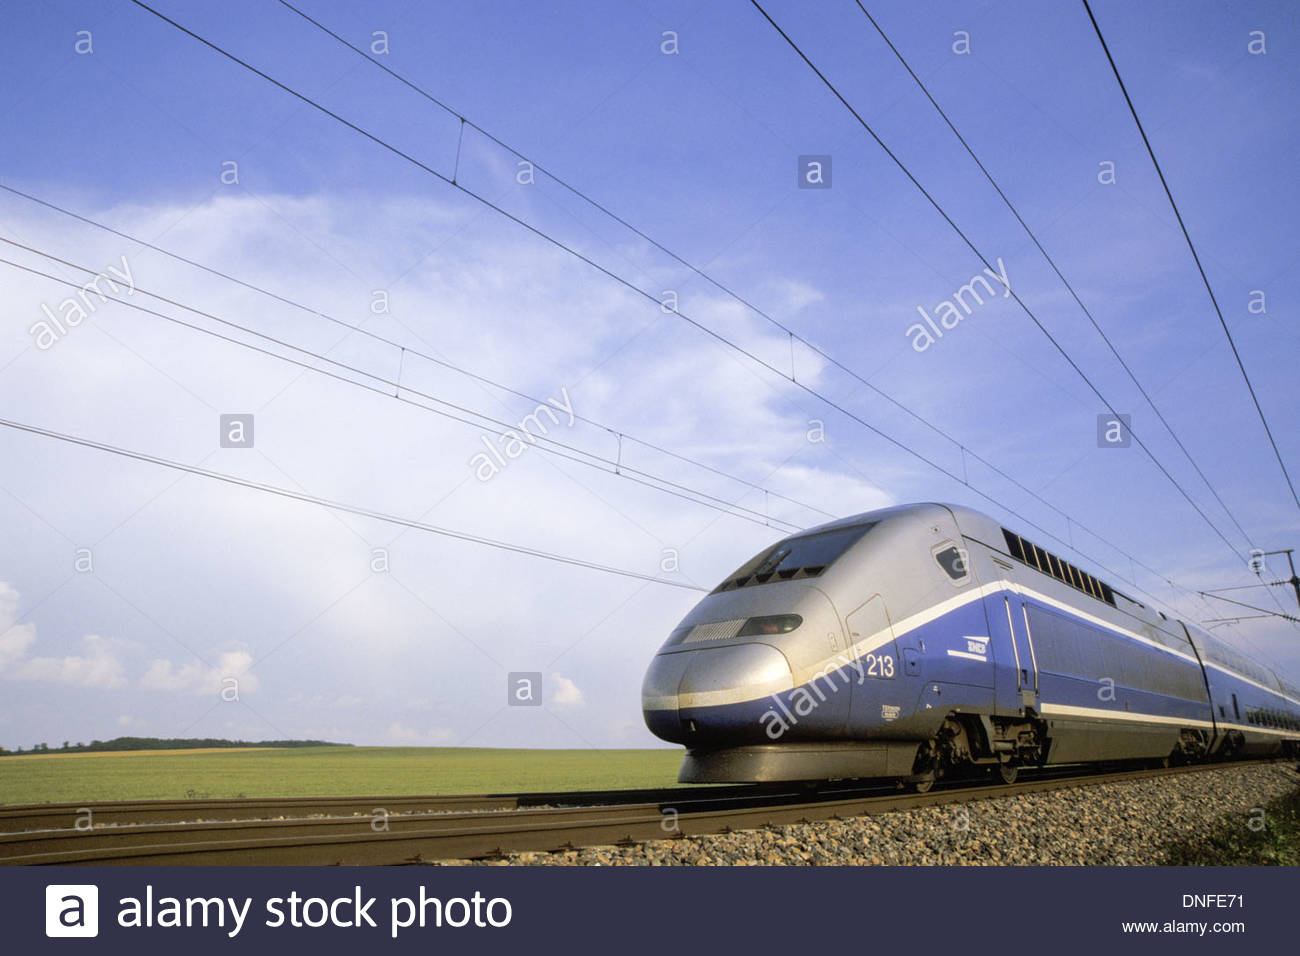 TGV Duplex Paris-Lyon Stock Photo: 64879333 - Alamy